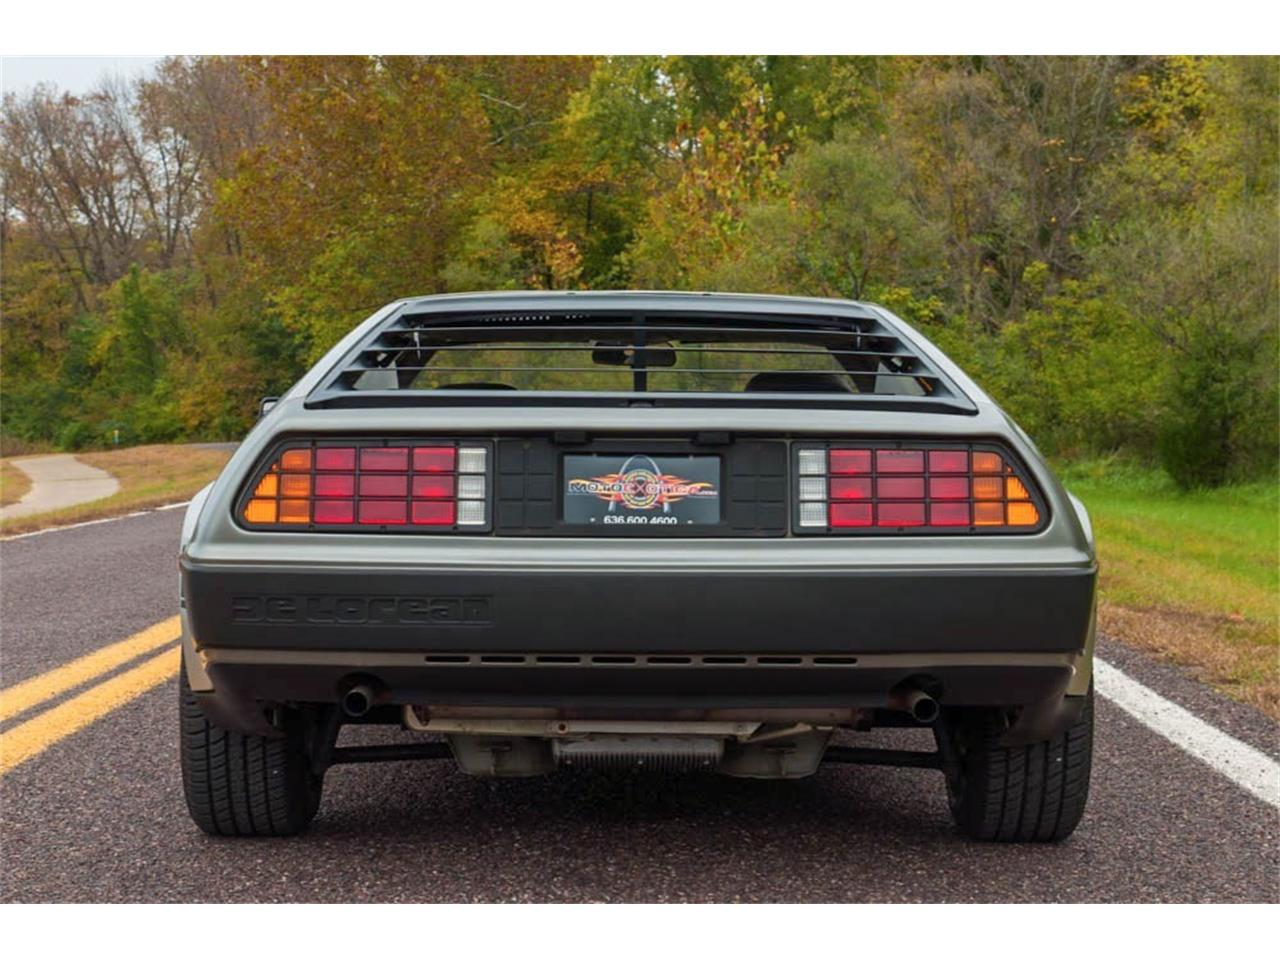 Large Picture of 1981 DeLorean DMC-12 located in St. Louis Missouri - $73,500.00 - JPXR